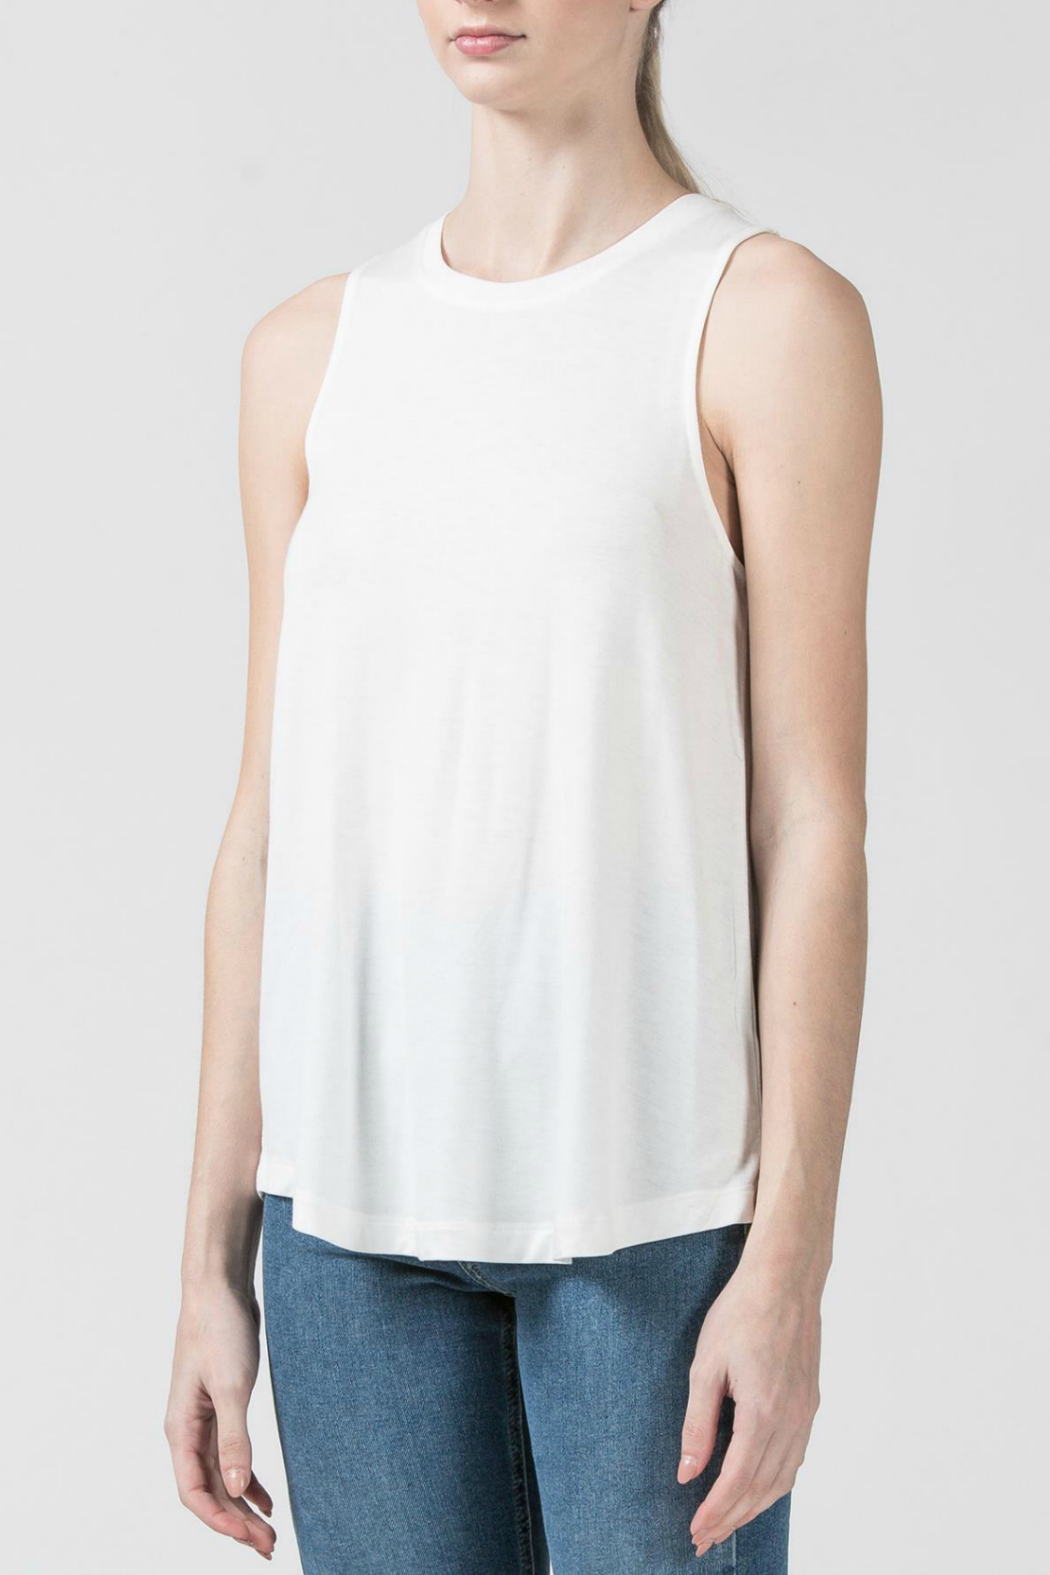 HYFVE Sleeveless top - Front Cropped Image